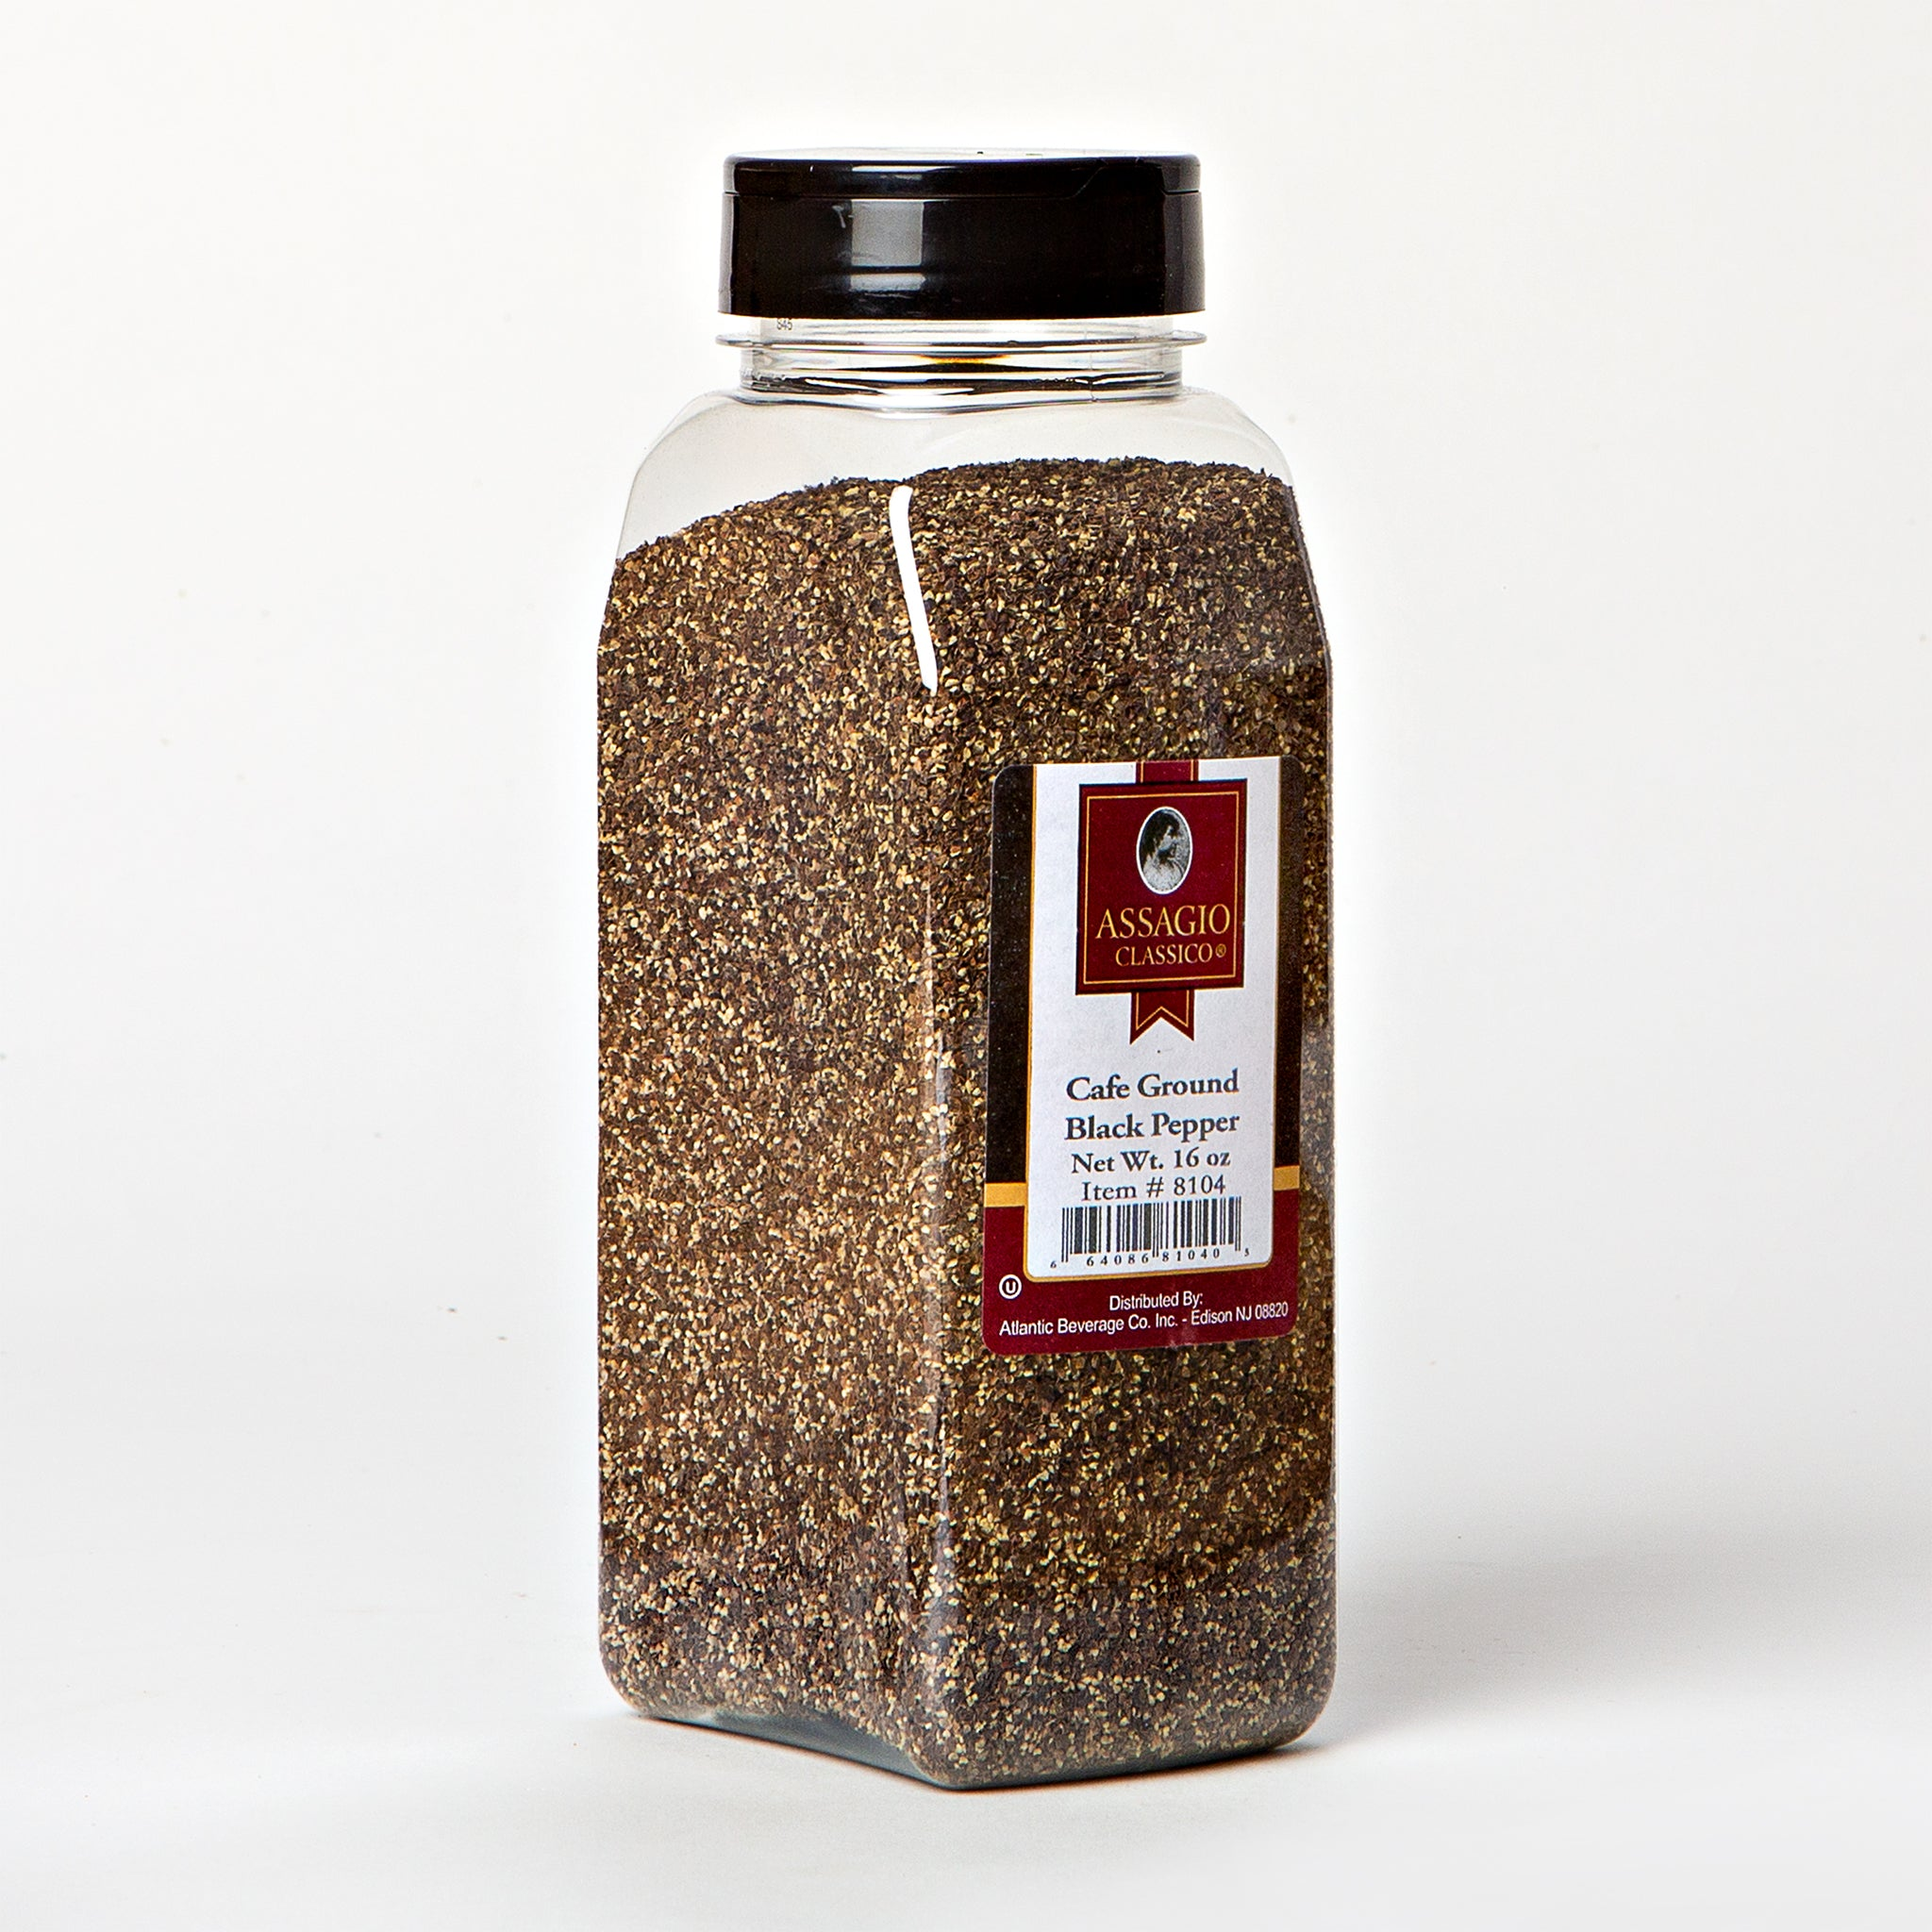 Cafe Ground Black Pepper